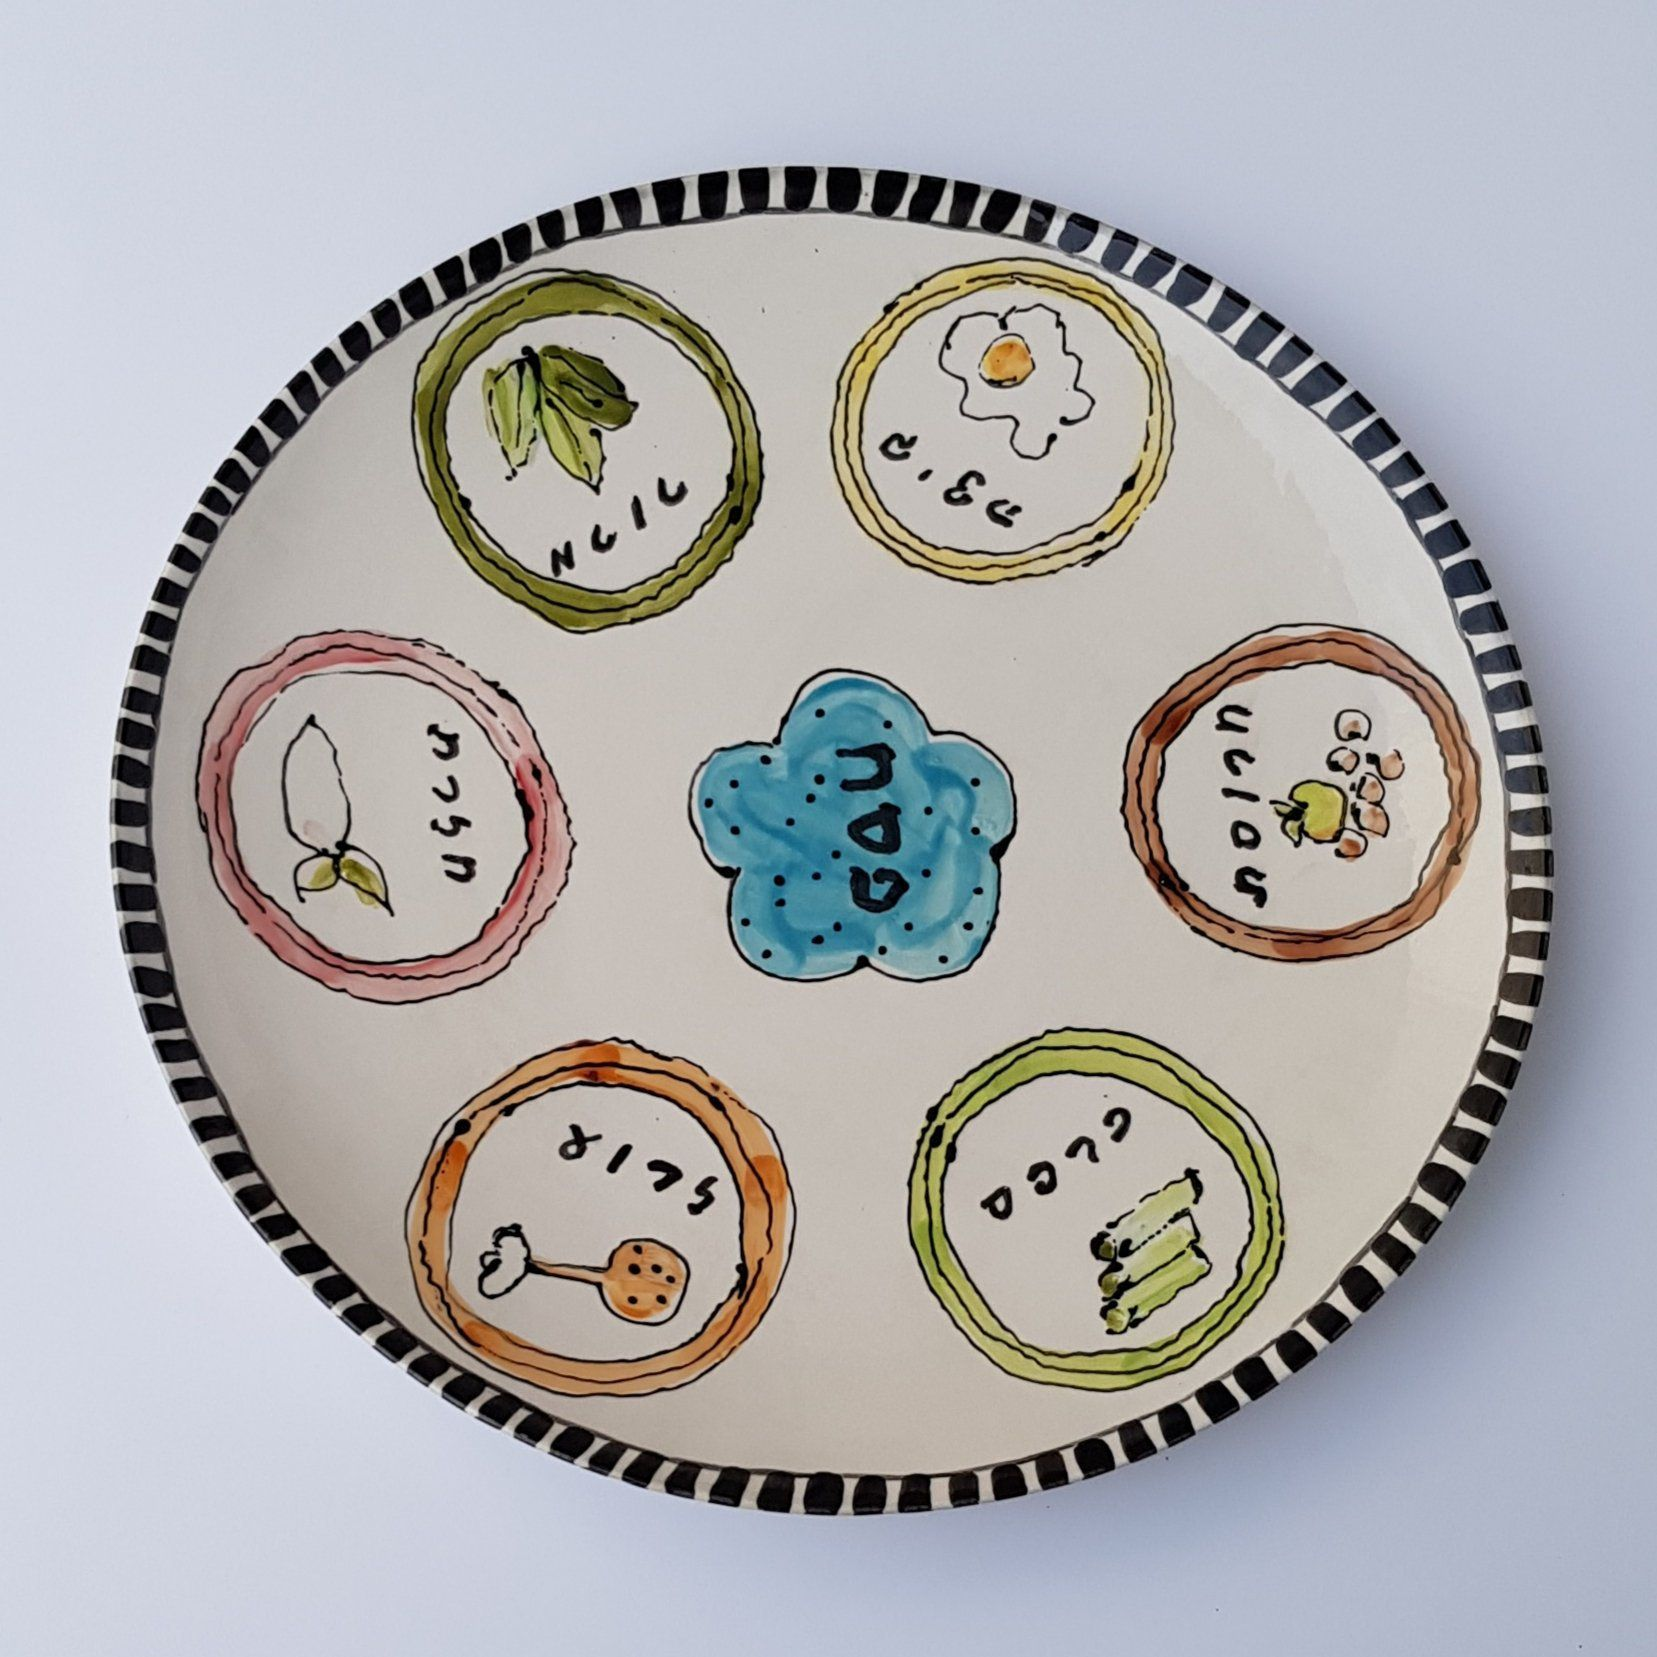 Ceramic Hand Painted Passover Seder Plate With Images